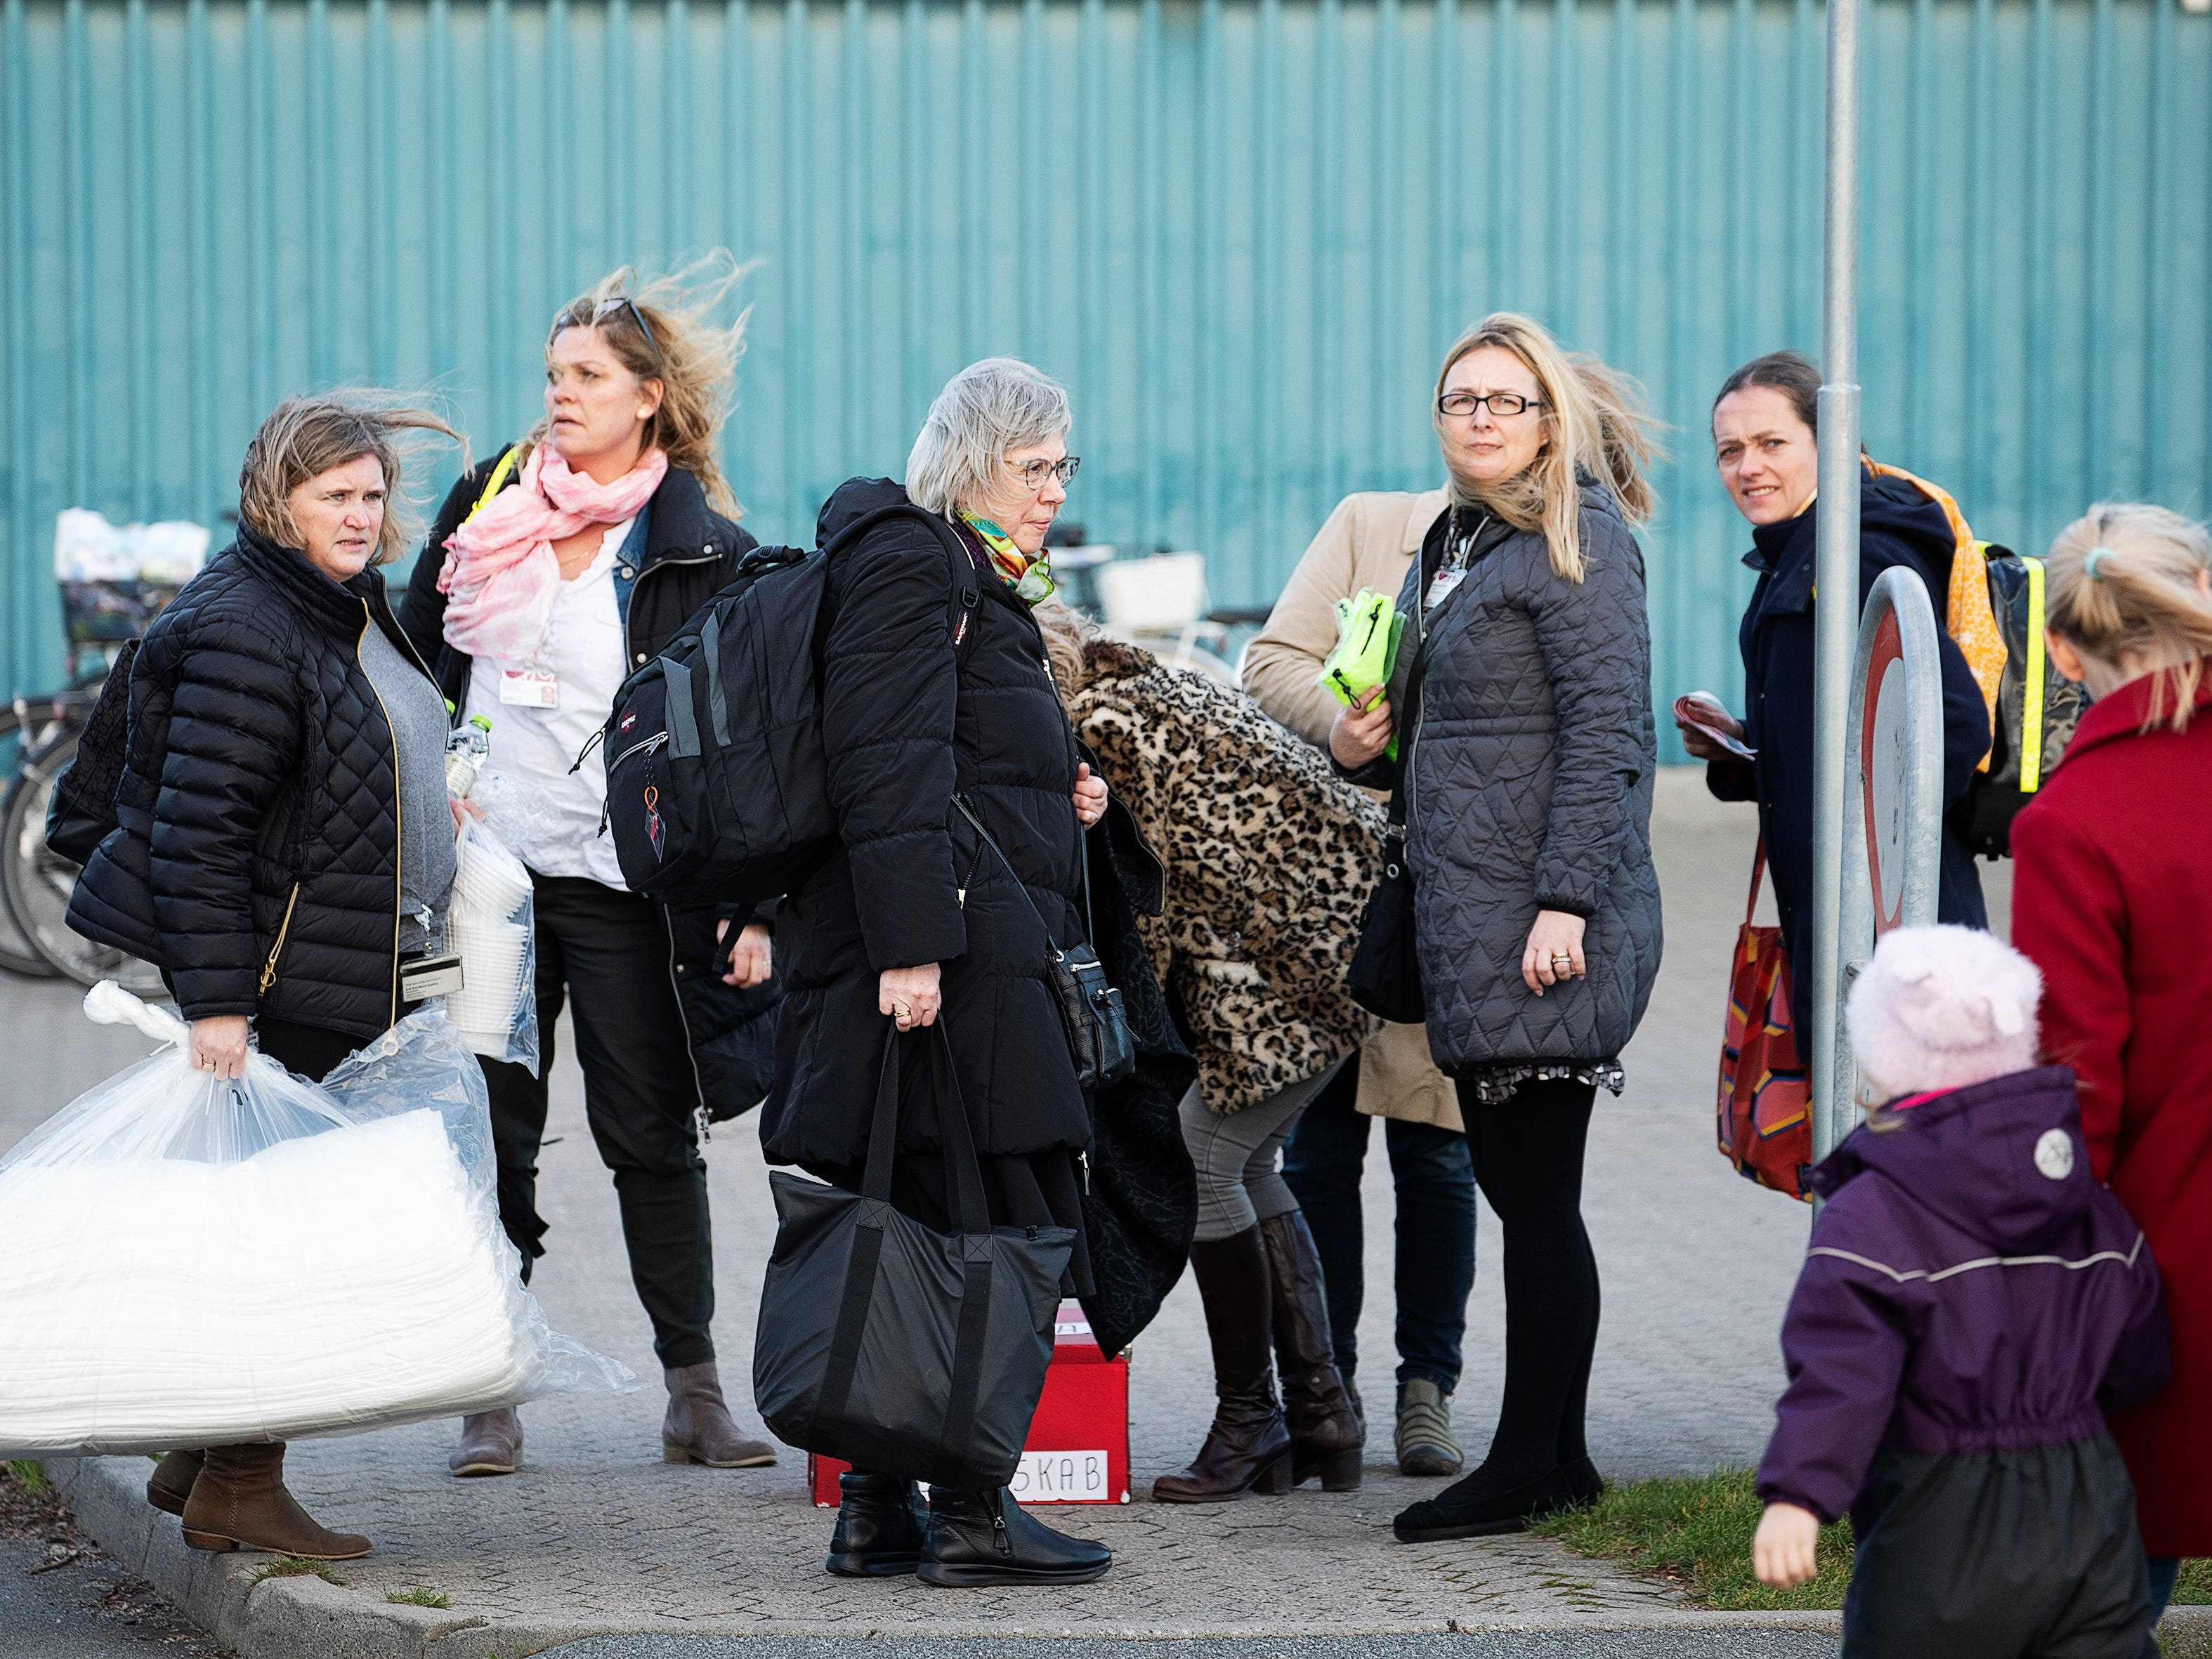 "Uninjured passengers who were on board a train involved in an accident on the Great Belt arrive at Nyborg Sports Center where a temporary crisis center has been set up, in Nyborg, Denmark, Wednesday, Jan. 2, 2019.  A passenger train on a bridge linking central Denmark's islands hit an ""unknown object"" early Wednesday, killing at least six people and injuring over a dozen others, Danish police said. Danish media reported that a tarpaulin on a freight train hit the passenger train, which was going in the opposite direction, prompting it to brake violently. Police spokesman Arne Gram said the passenger train ""hit an unknown object,"" but did not further comment. (Carsten Bundgaard Andersen/Ritzau Scanpix via AP) ORG XMIT: AMB806"